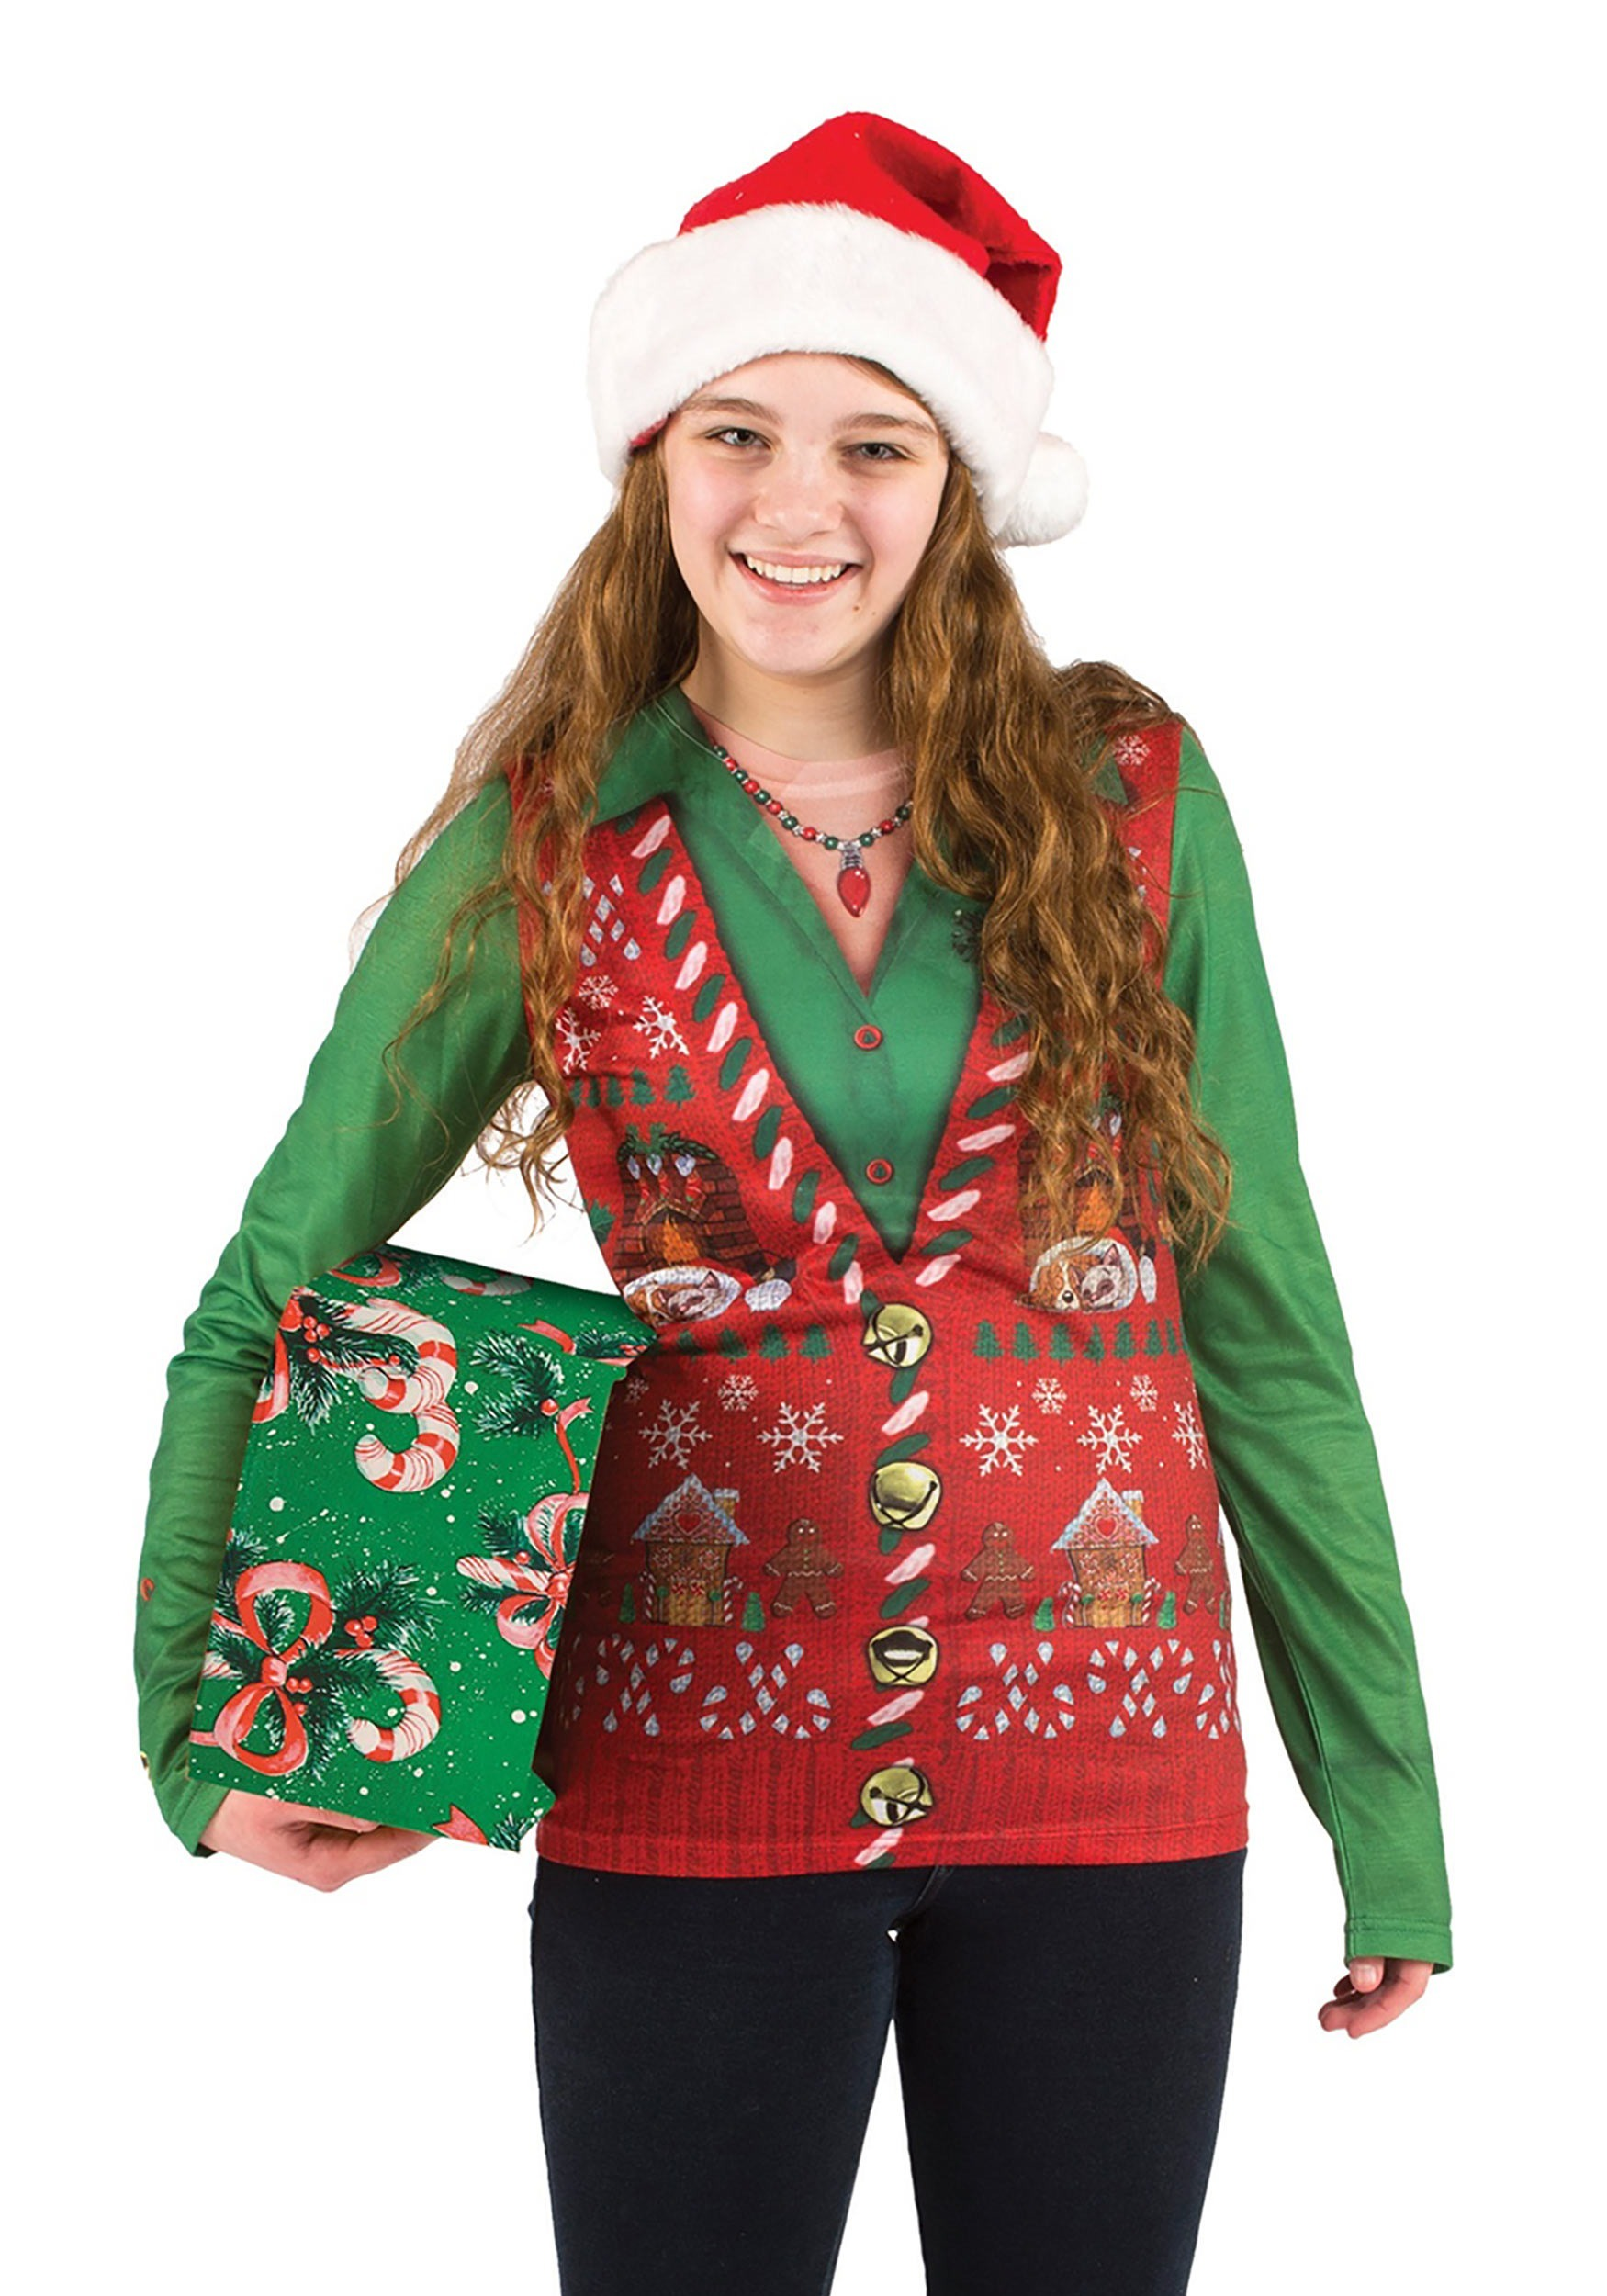 Women's Ugly Christmas Sweater Vest Shirt